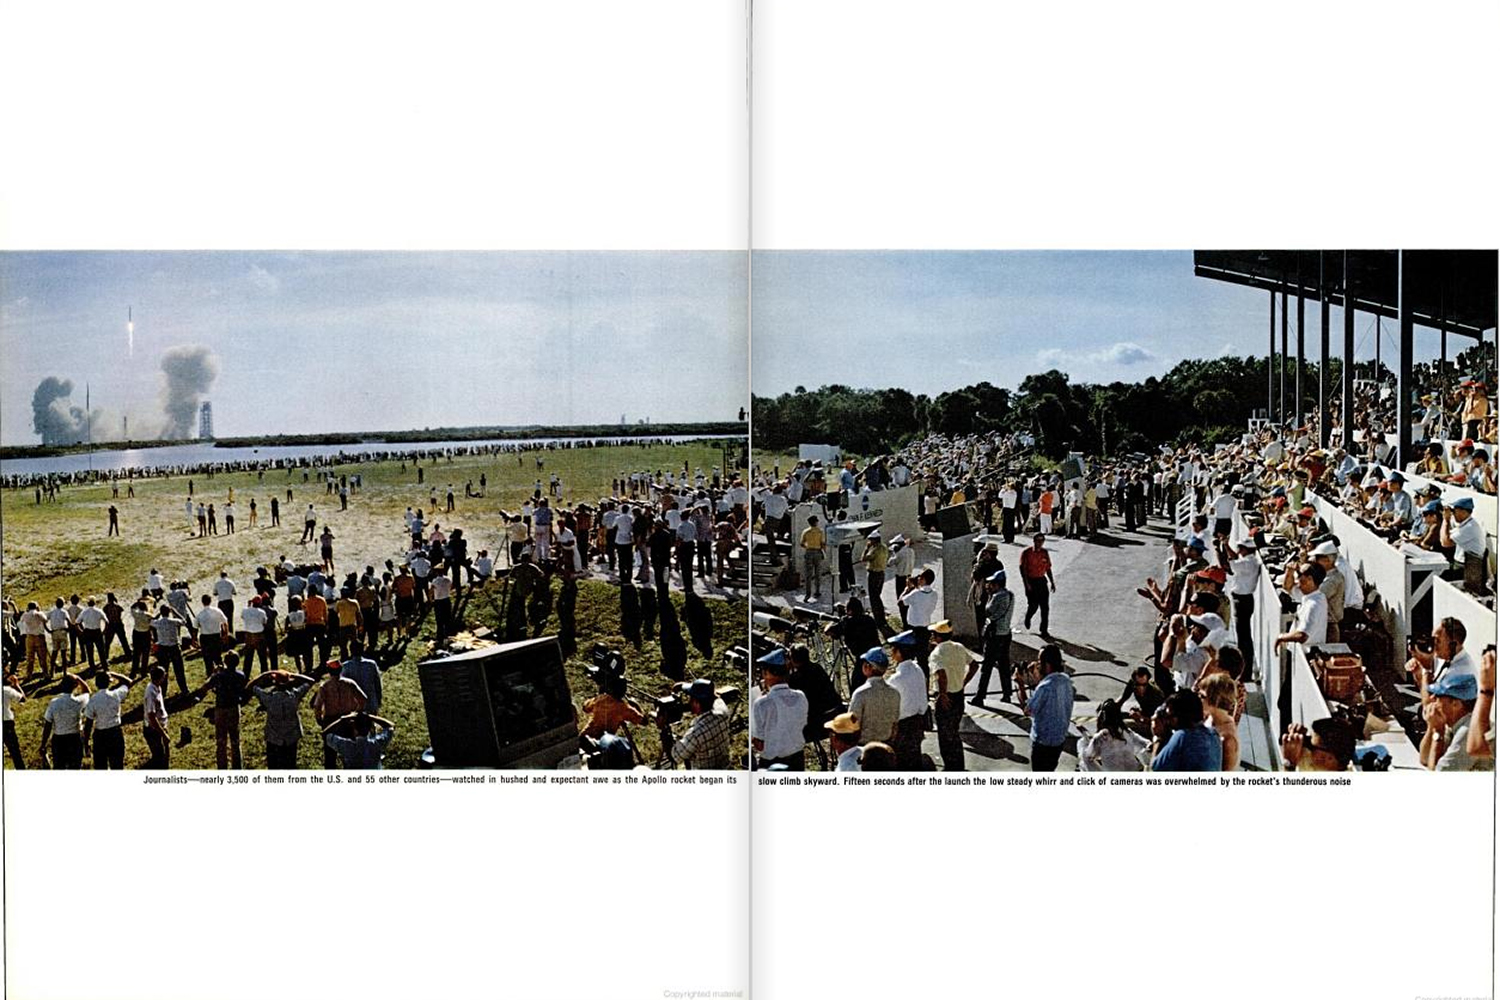 "<b>Life magazine Special Edition, August 11, 1969.</b> ""Journalists — nearly 3,500 of them from the U.S. and 55 other countries -- watched in hushed expectant awe as Apollo began its slow climb skyward ..."""